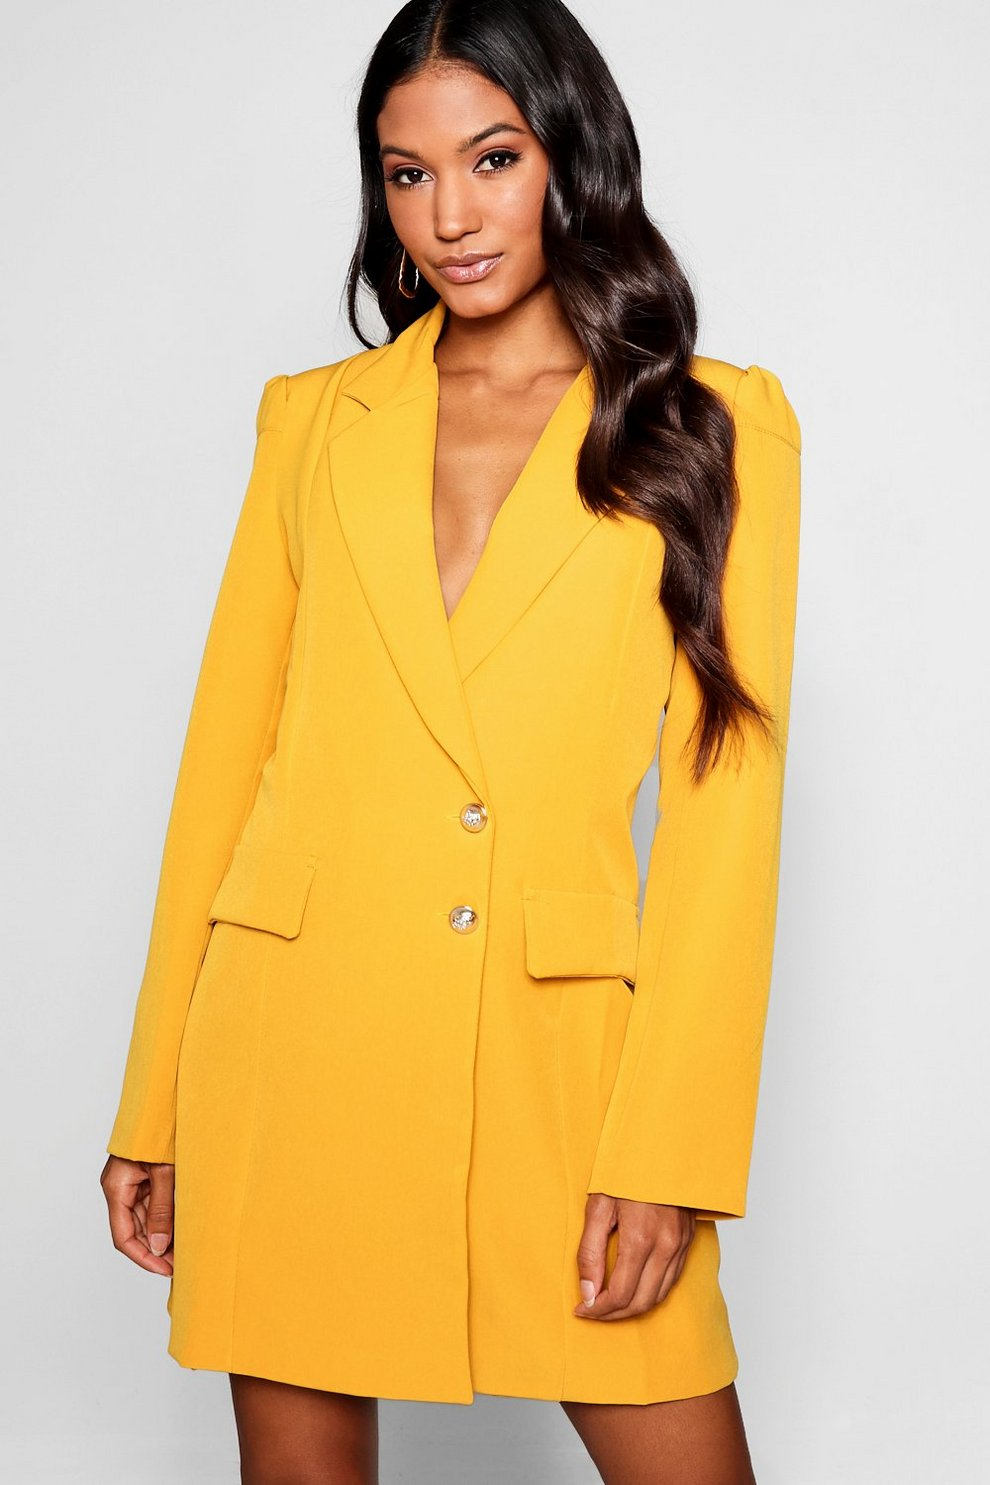 fd4fdc2d23e6f Womens Mustard Volume Sleeve Blazer Dress. Hover to zoom